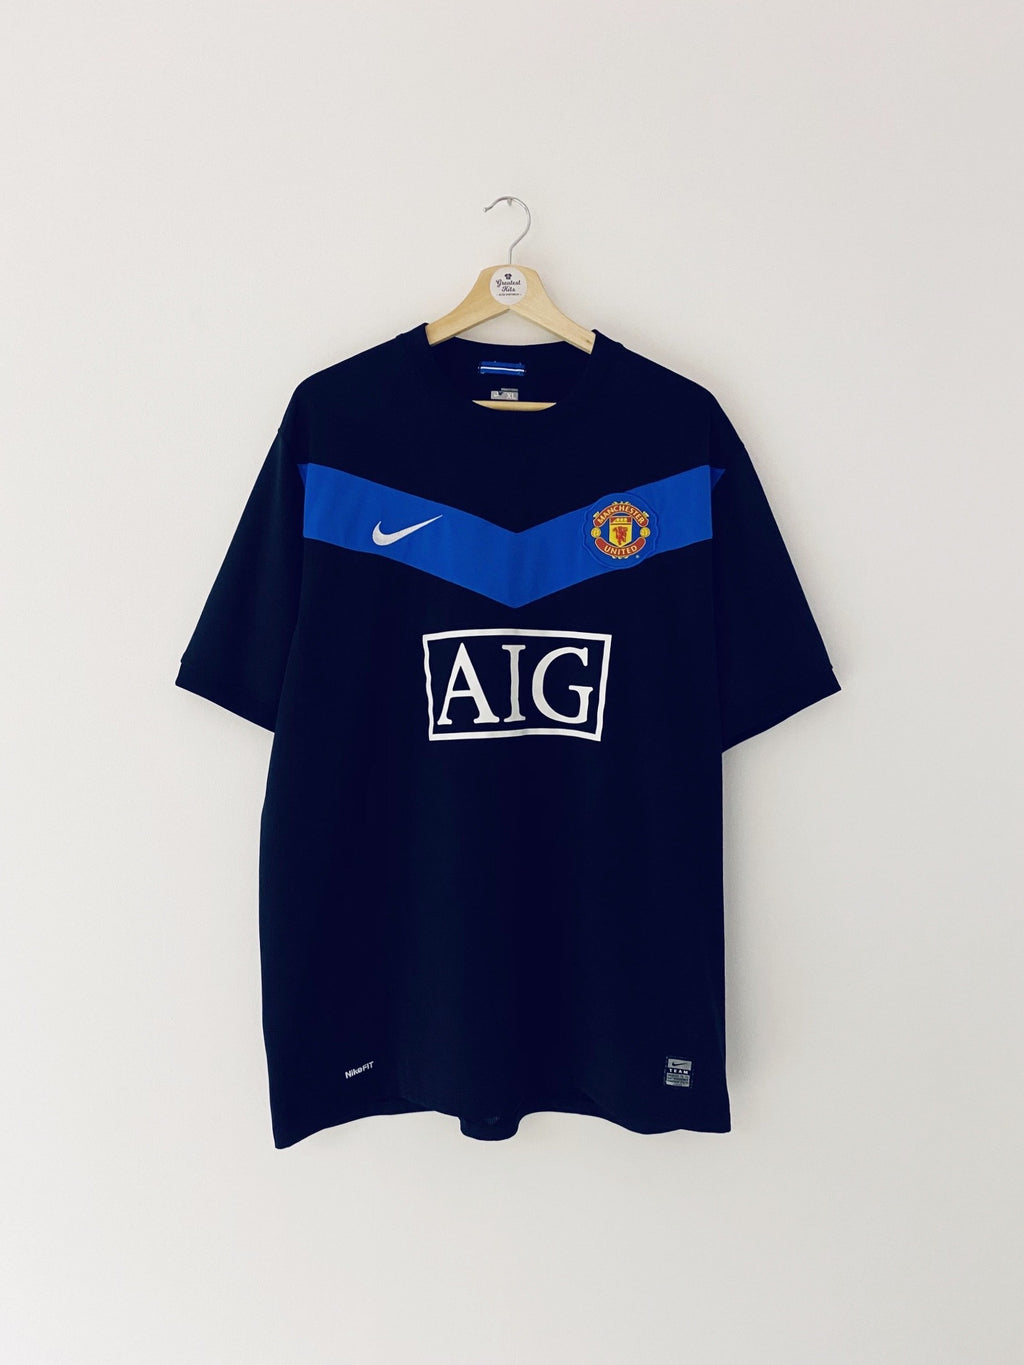 2009/10 Manchester United Away Shirt (XL) 9/10